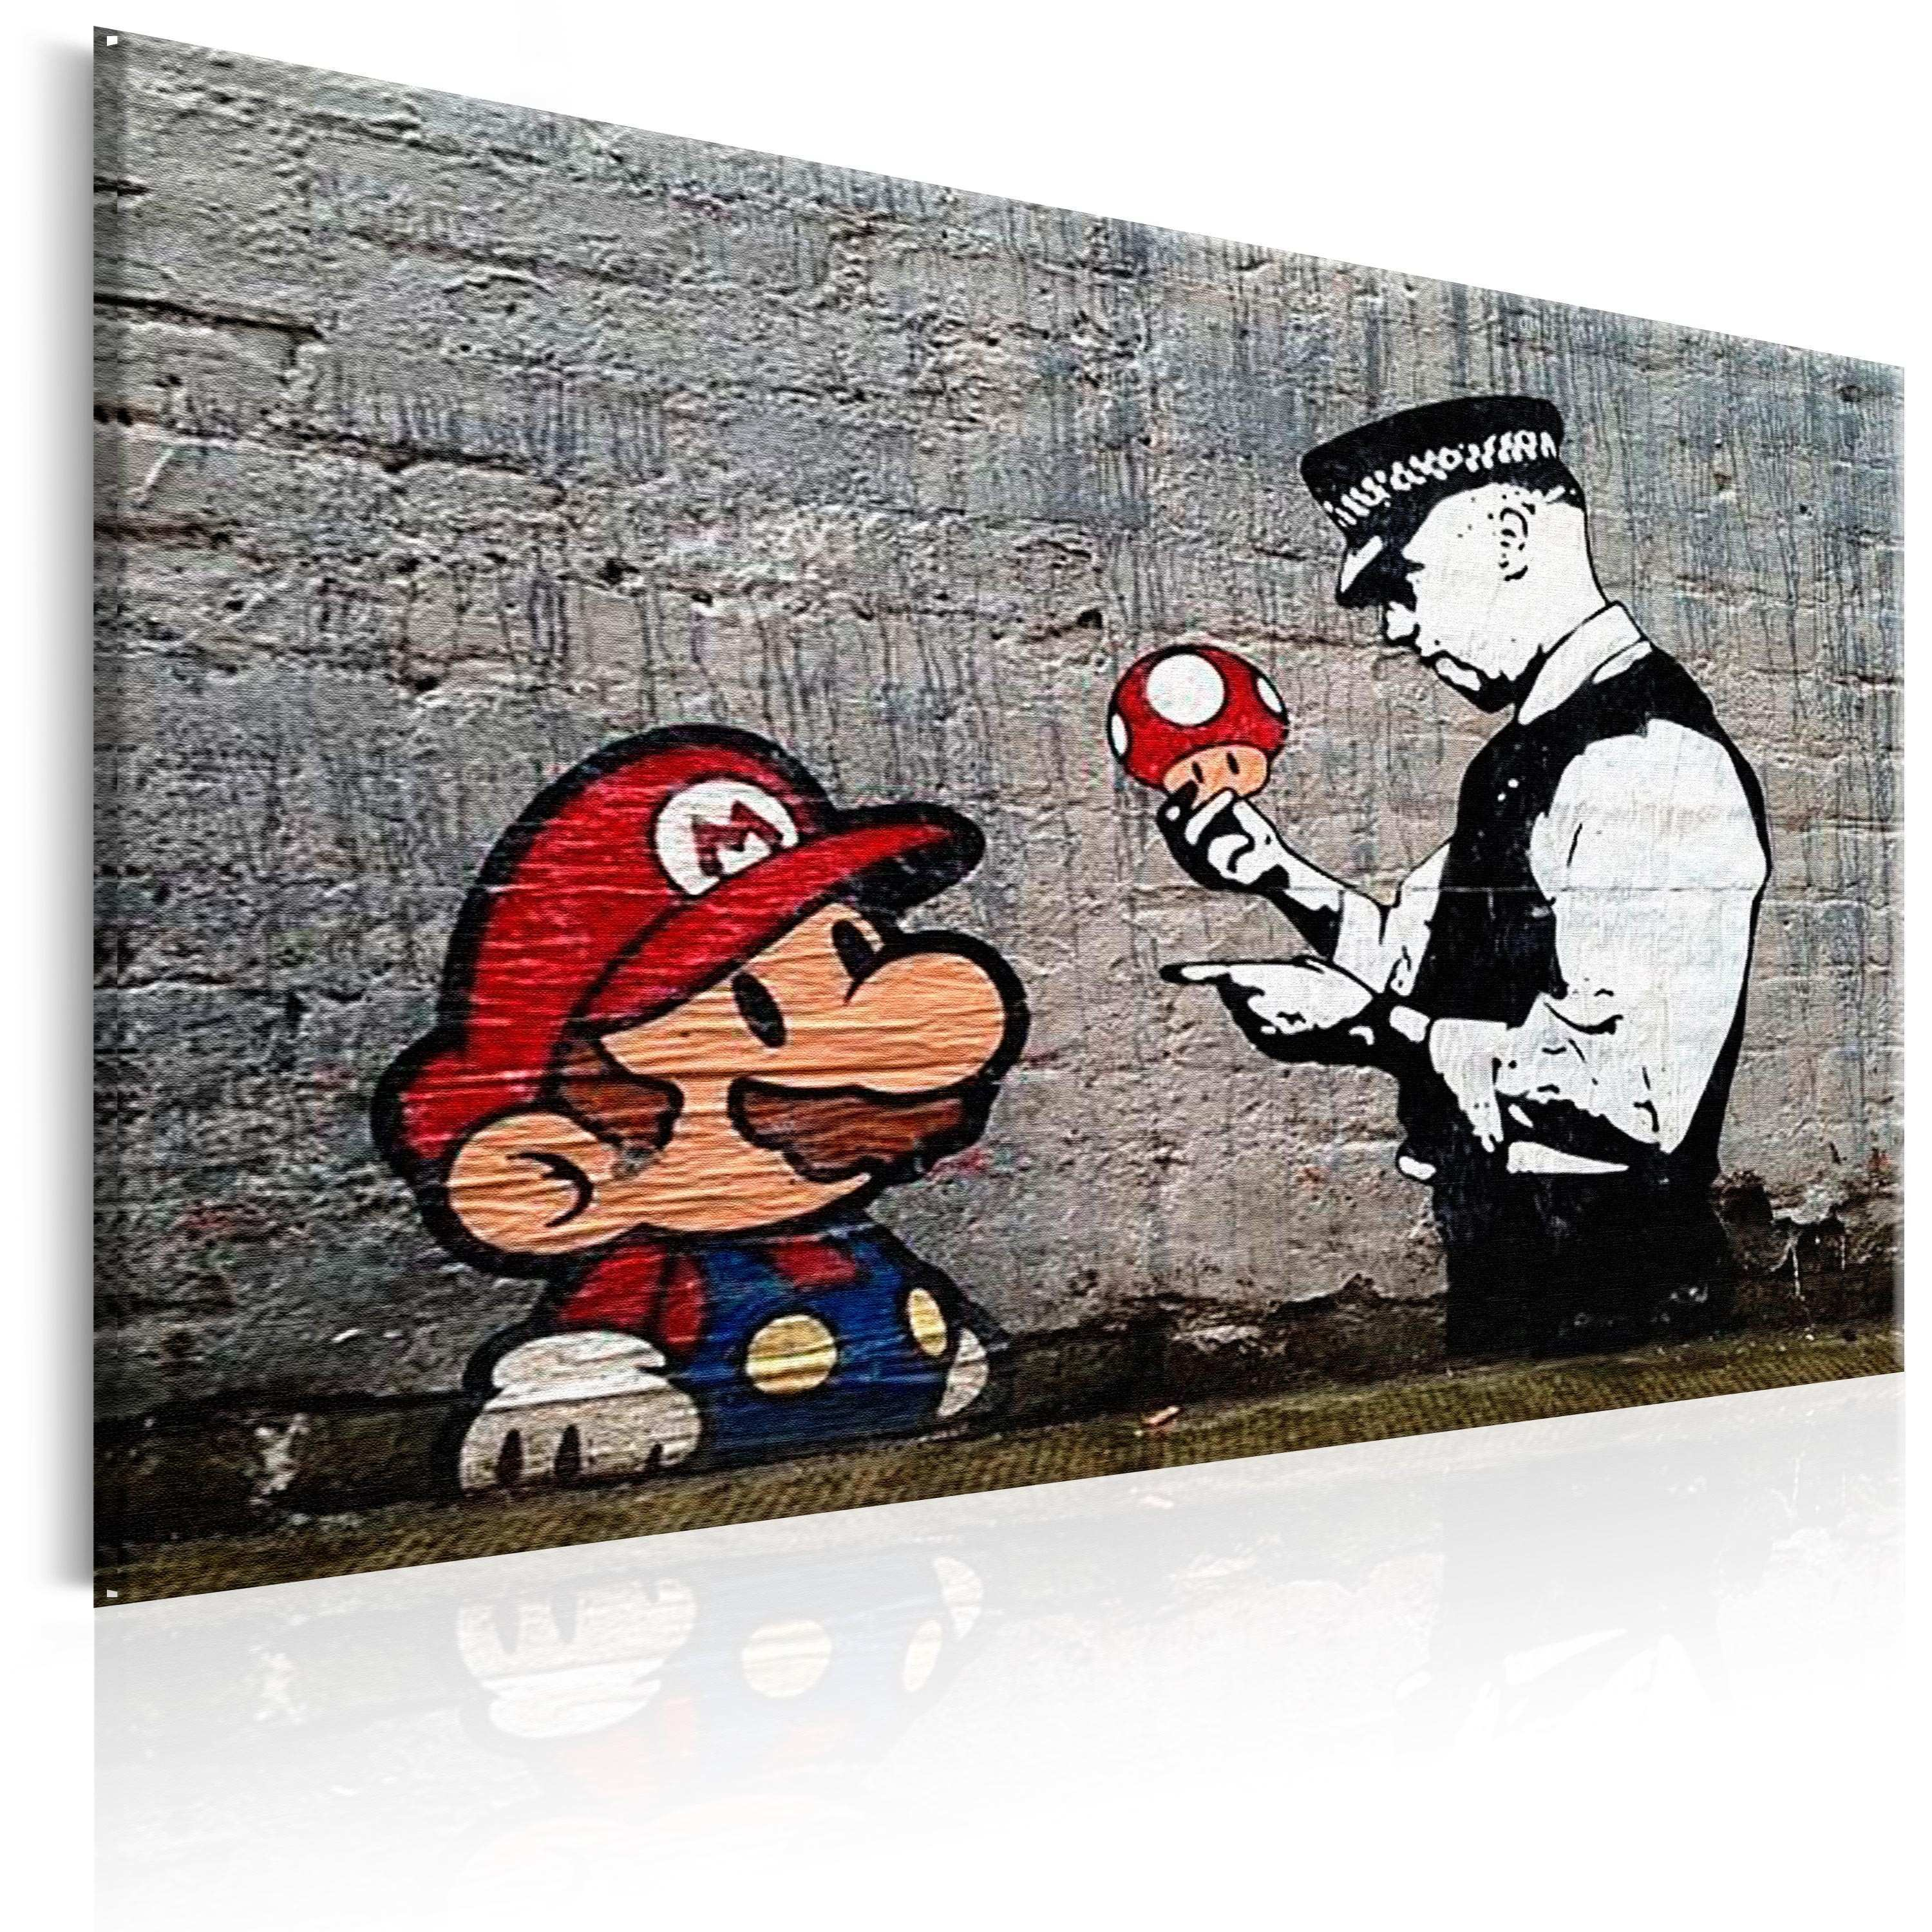 Canvas Painting Mario and Cop by Banksy Graffiti Street Art